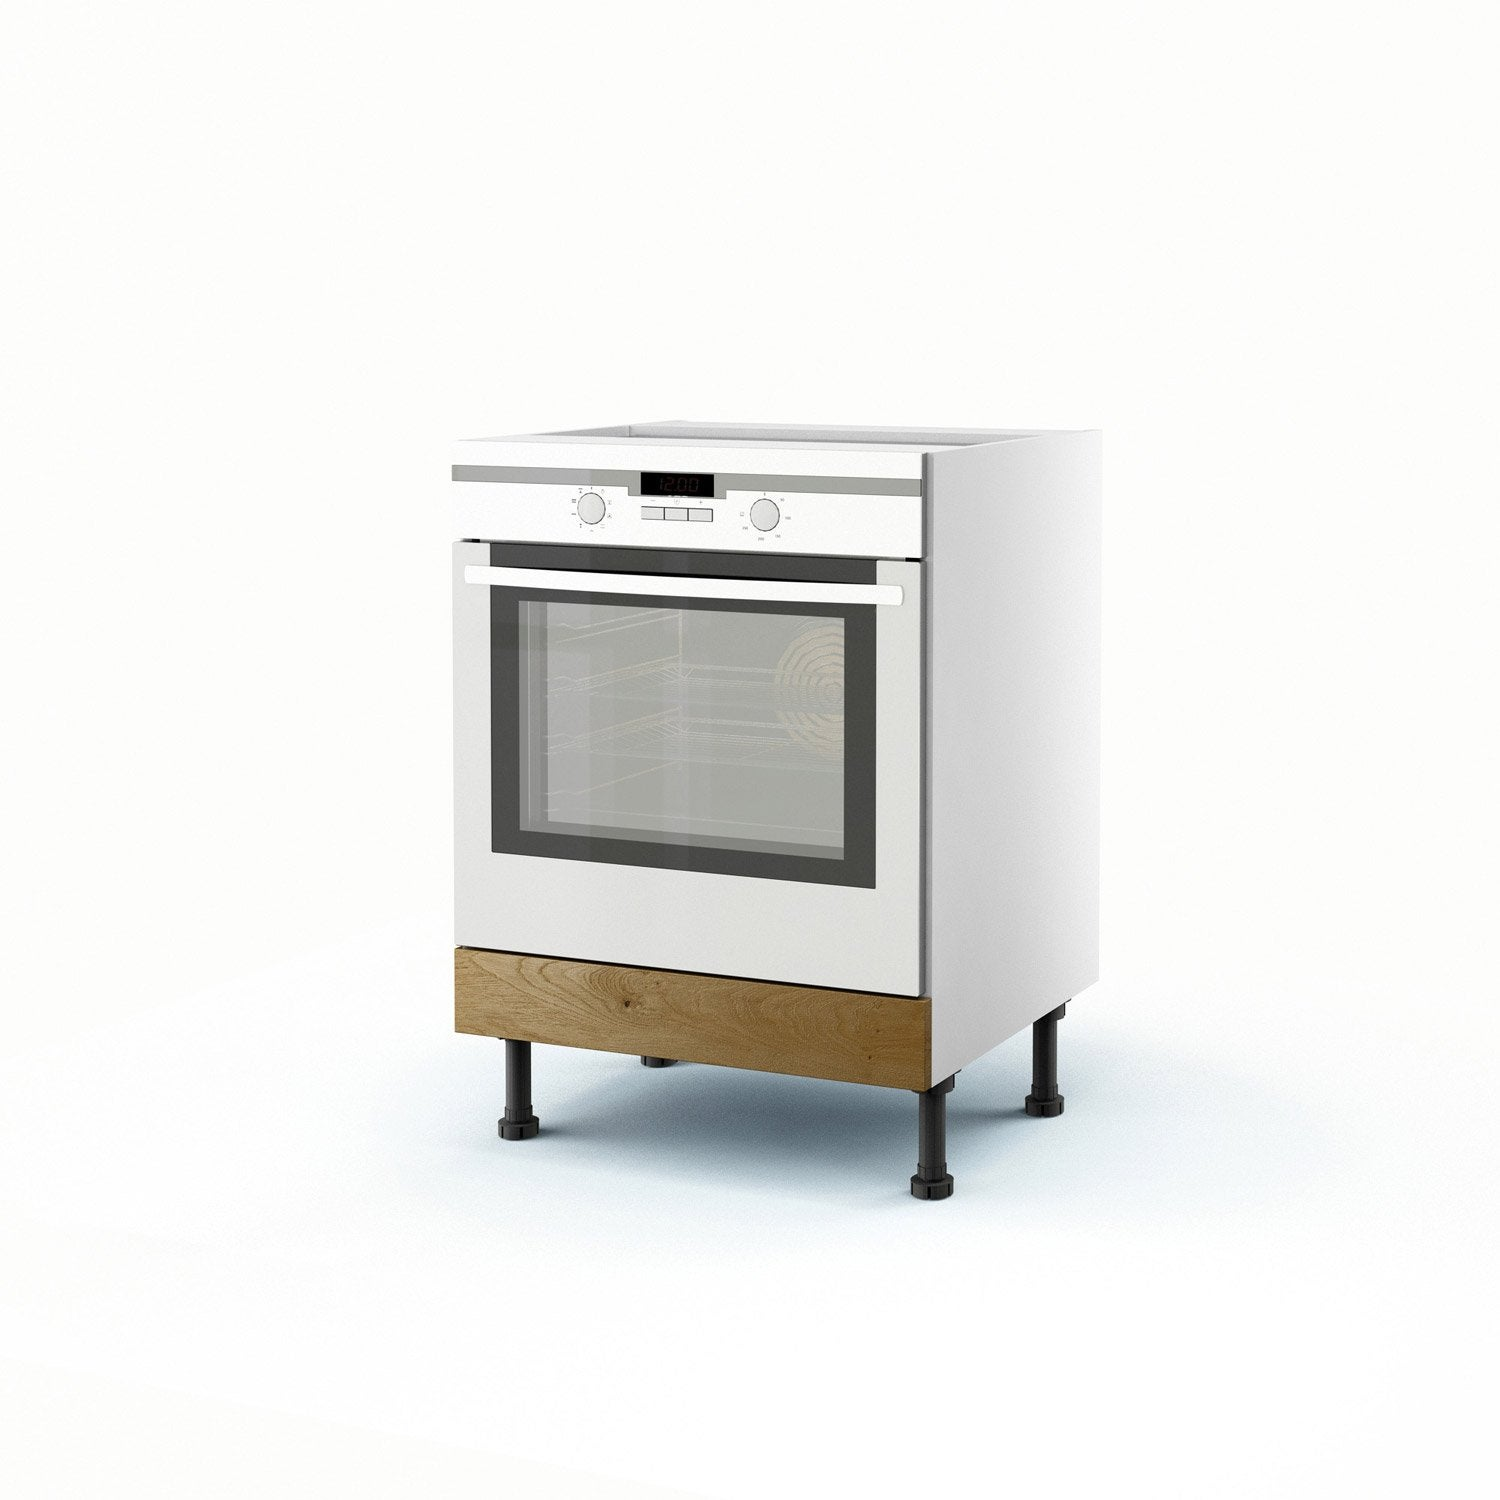 Meuble de cuisine bas ch ne four origine h70xl60xp56 cm leroy merlin - Leroy merlin origine ...